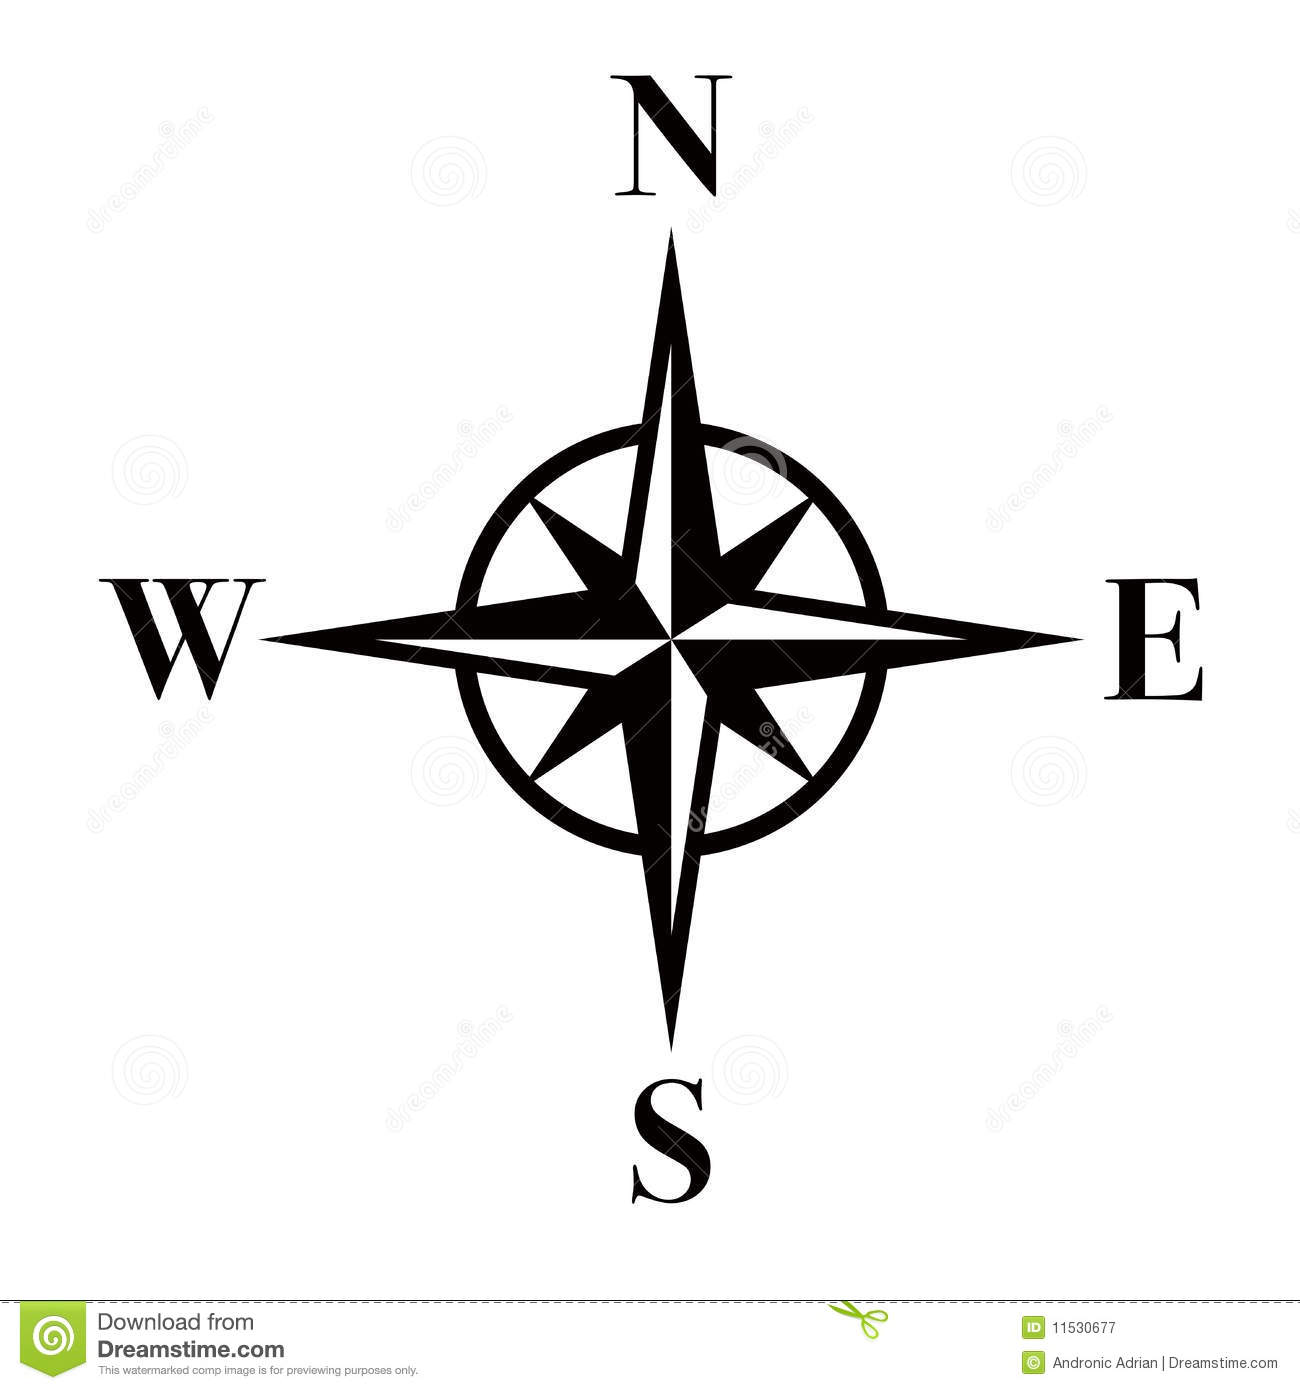 Point of the compass clipart #9